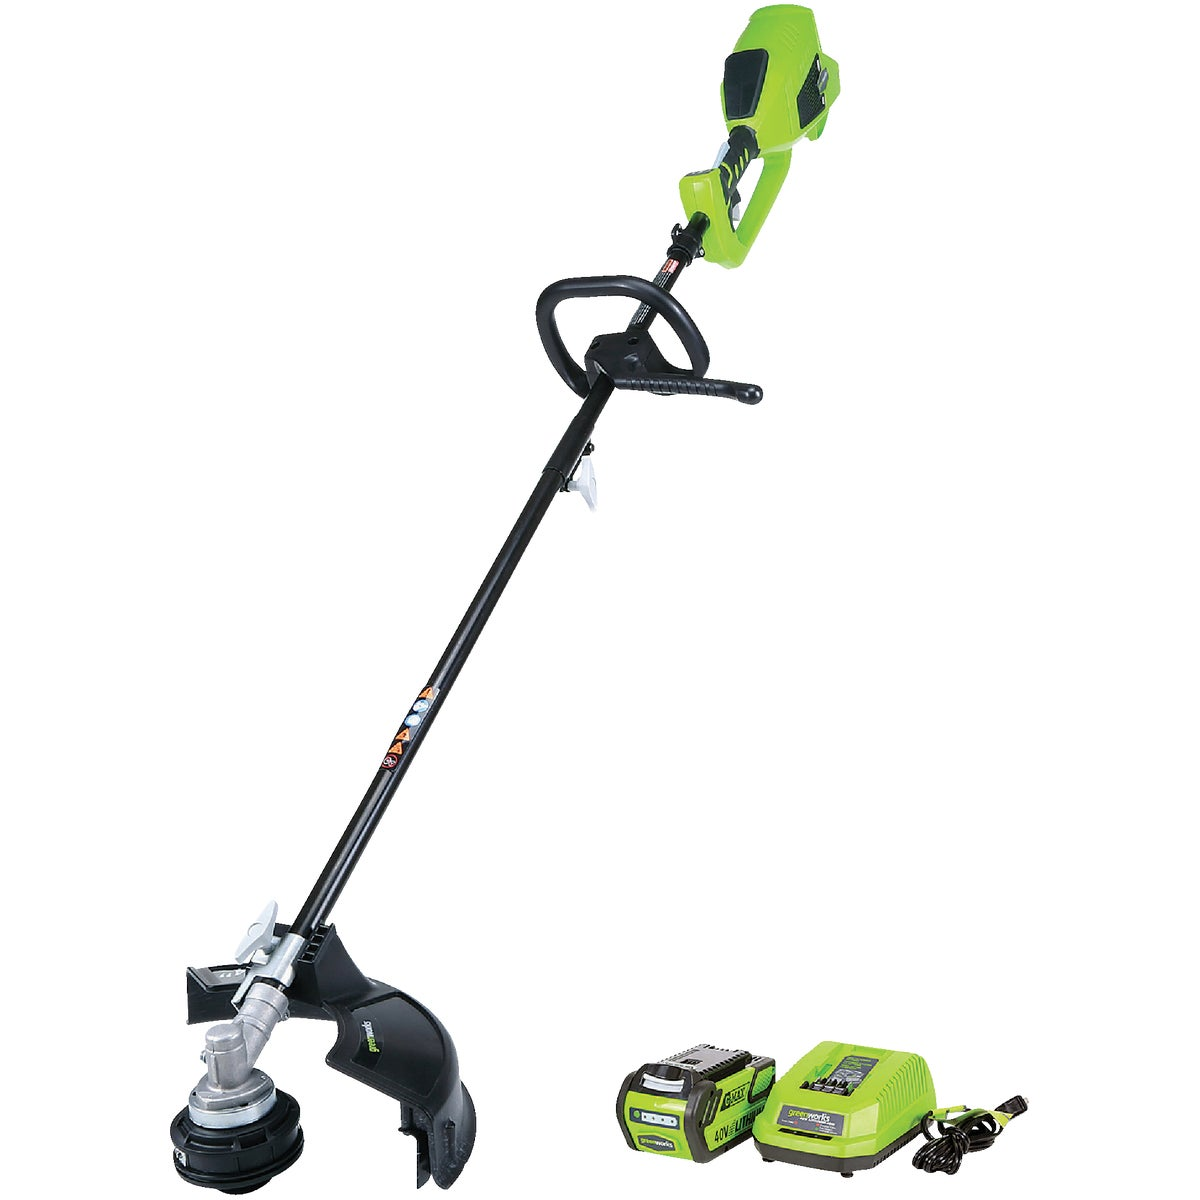 Greenworks G-Max 40V 14 In. Cordless String Trimmer, 2100702